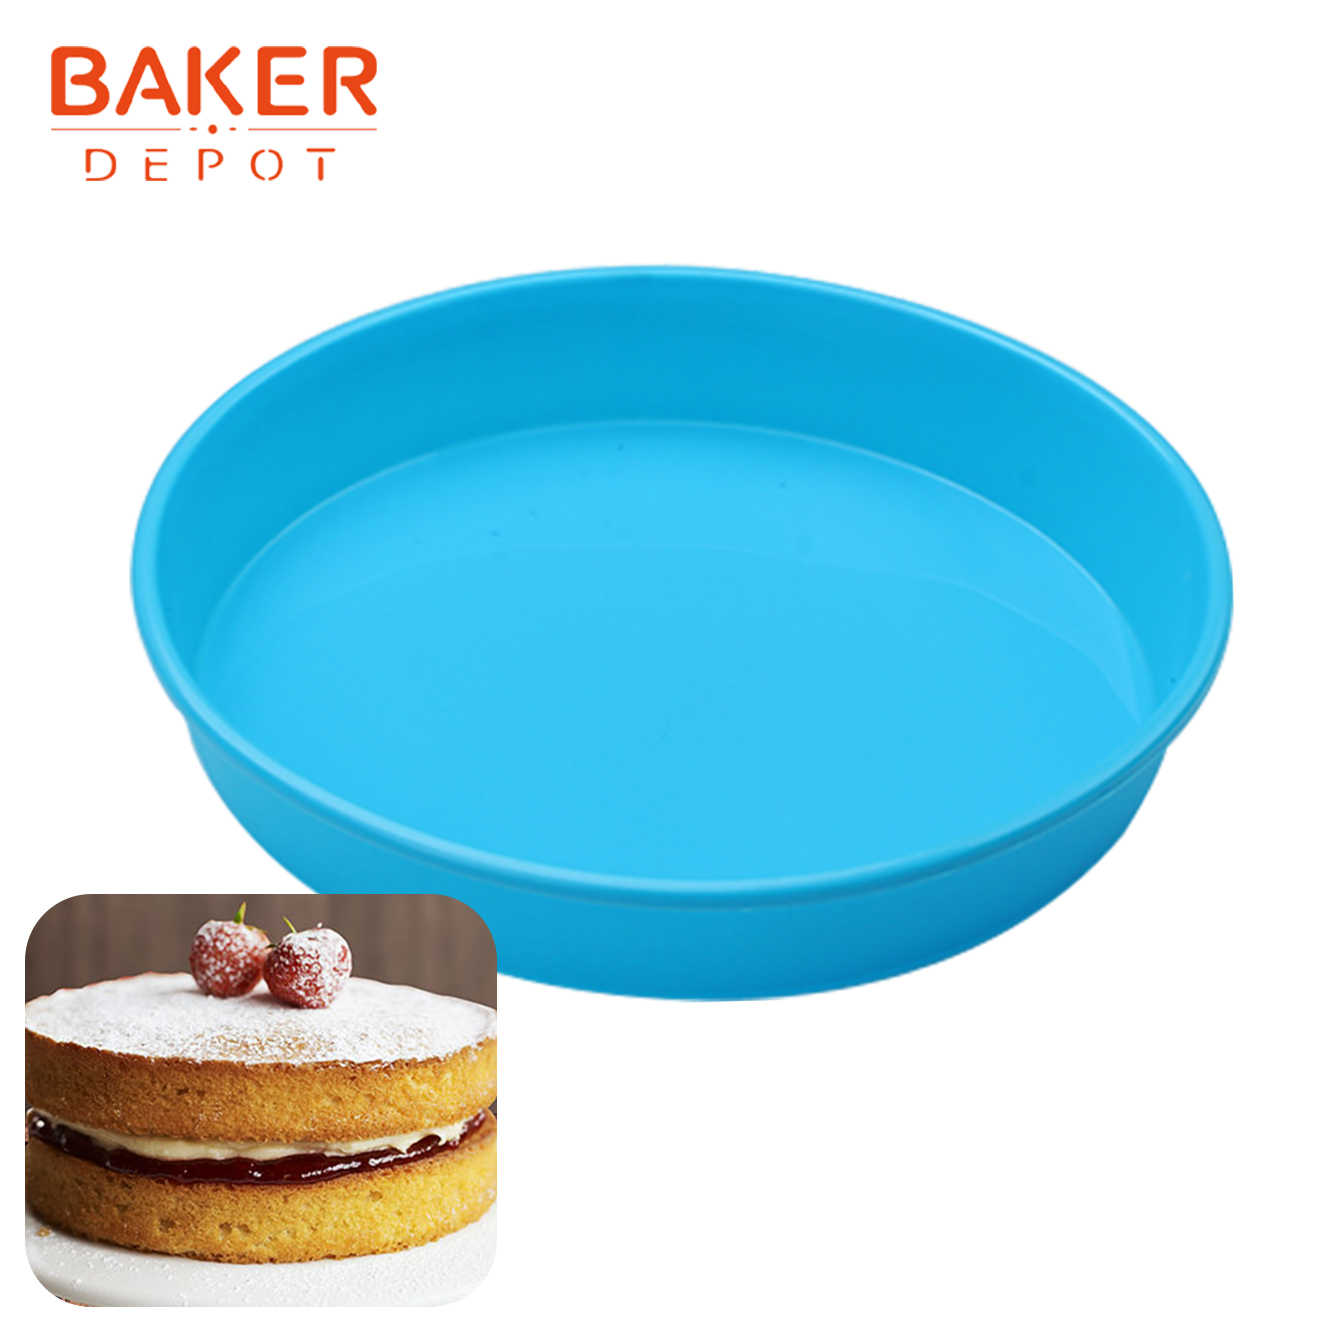 Blue, 15 x 6H Silicone Round Mold Fulted Pan Cake Nonstick Reusable Muffin Cupcake Molds for Baking Pound Cake Bread Grade Silicone Cake Mold cm